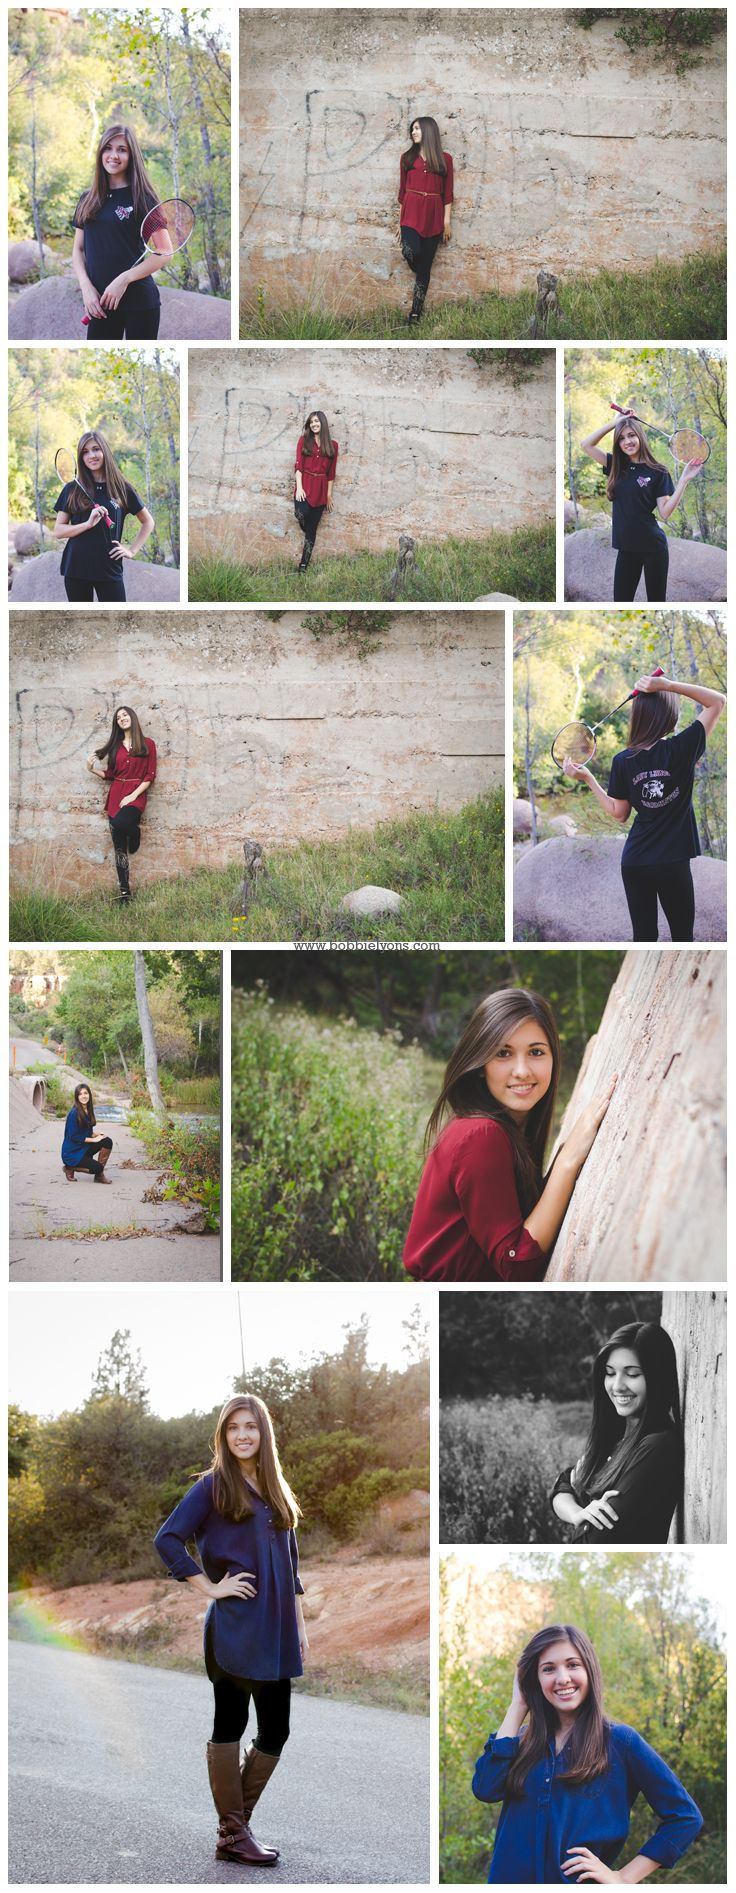 Senior photography in Payson, Arizona East Verde River Fall Senior photography Senior Photography Style Senior Style Senior sports and graduation photos Senior River photography Senior photos in the forest Arizona senior photography www.bobbielyons.com  #senior #style #photography #graduation #payson #arizona #Fallphotos #yearbook  Fall senior pictures Fall senior picture ideas Fall Senior style pictures Senior sport pictures Senior girl sport pictures Senior girl racket and jersey